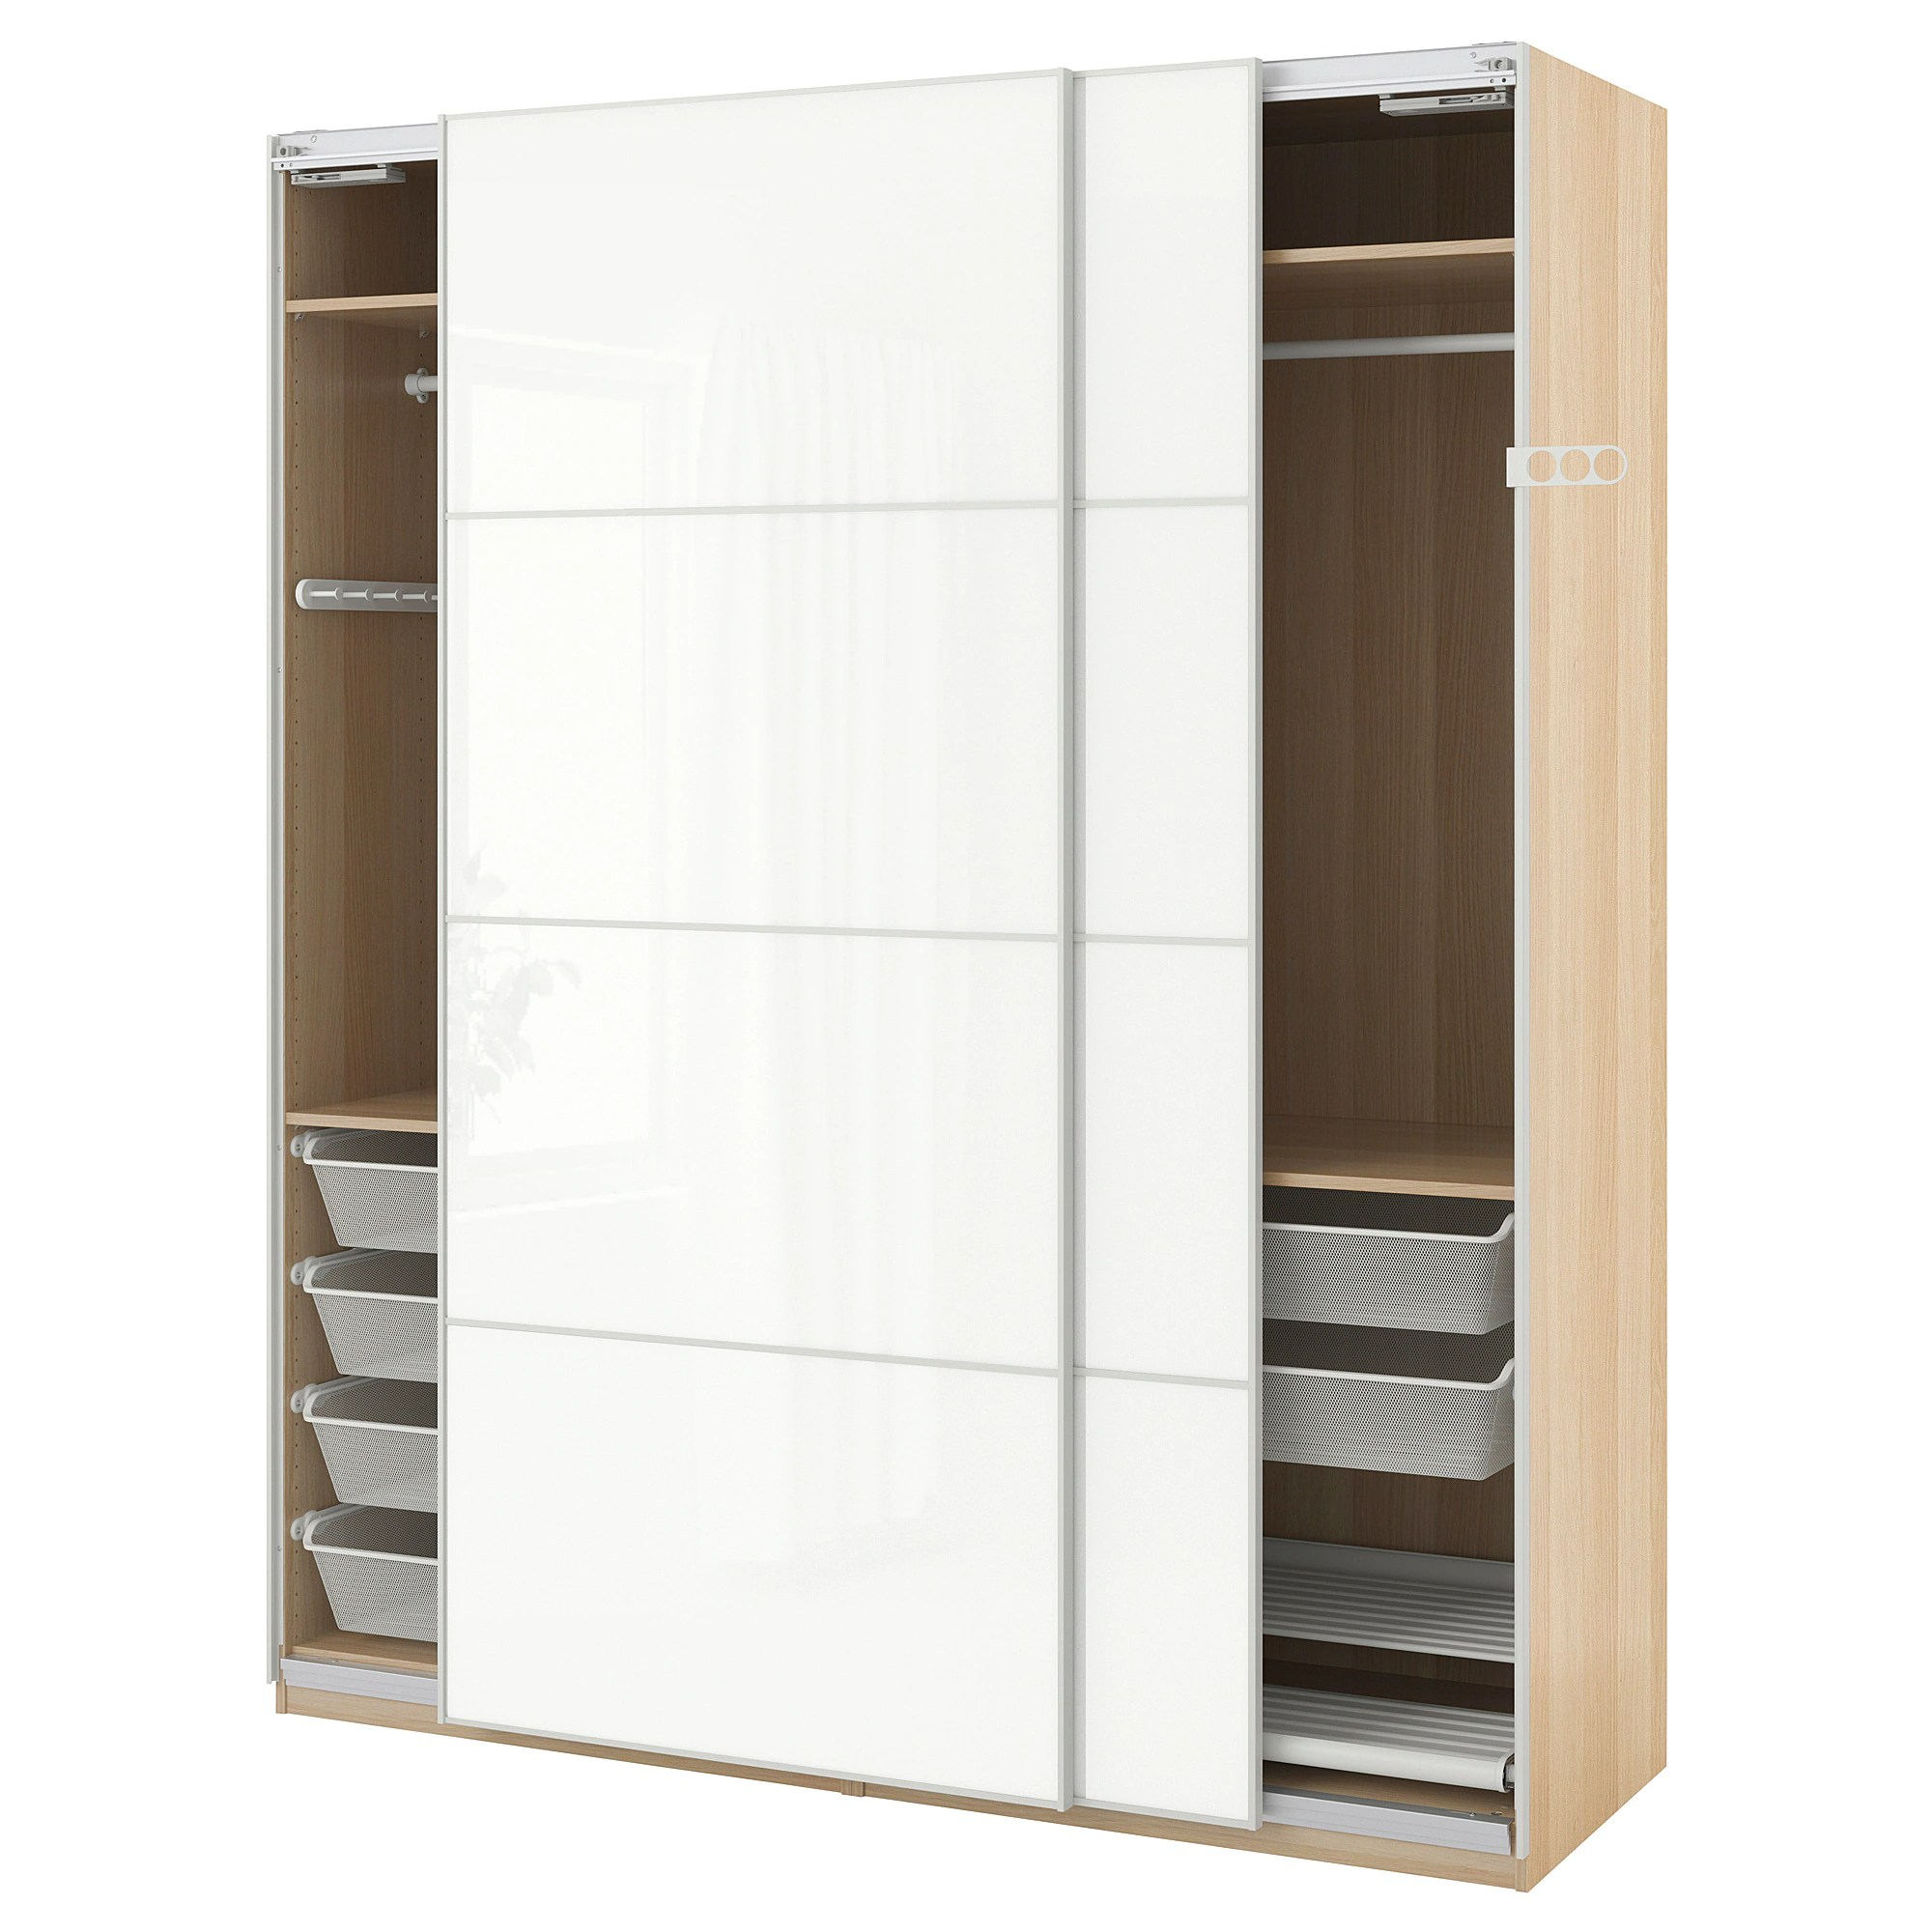 Ikea Guardaroba Pax Planner Wardrobe Pax White Stained Oak Effect Färvik White Glass